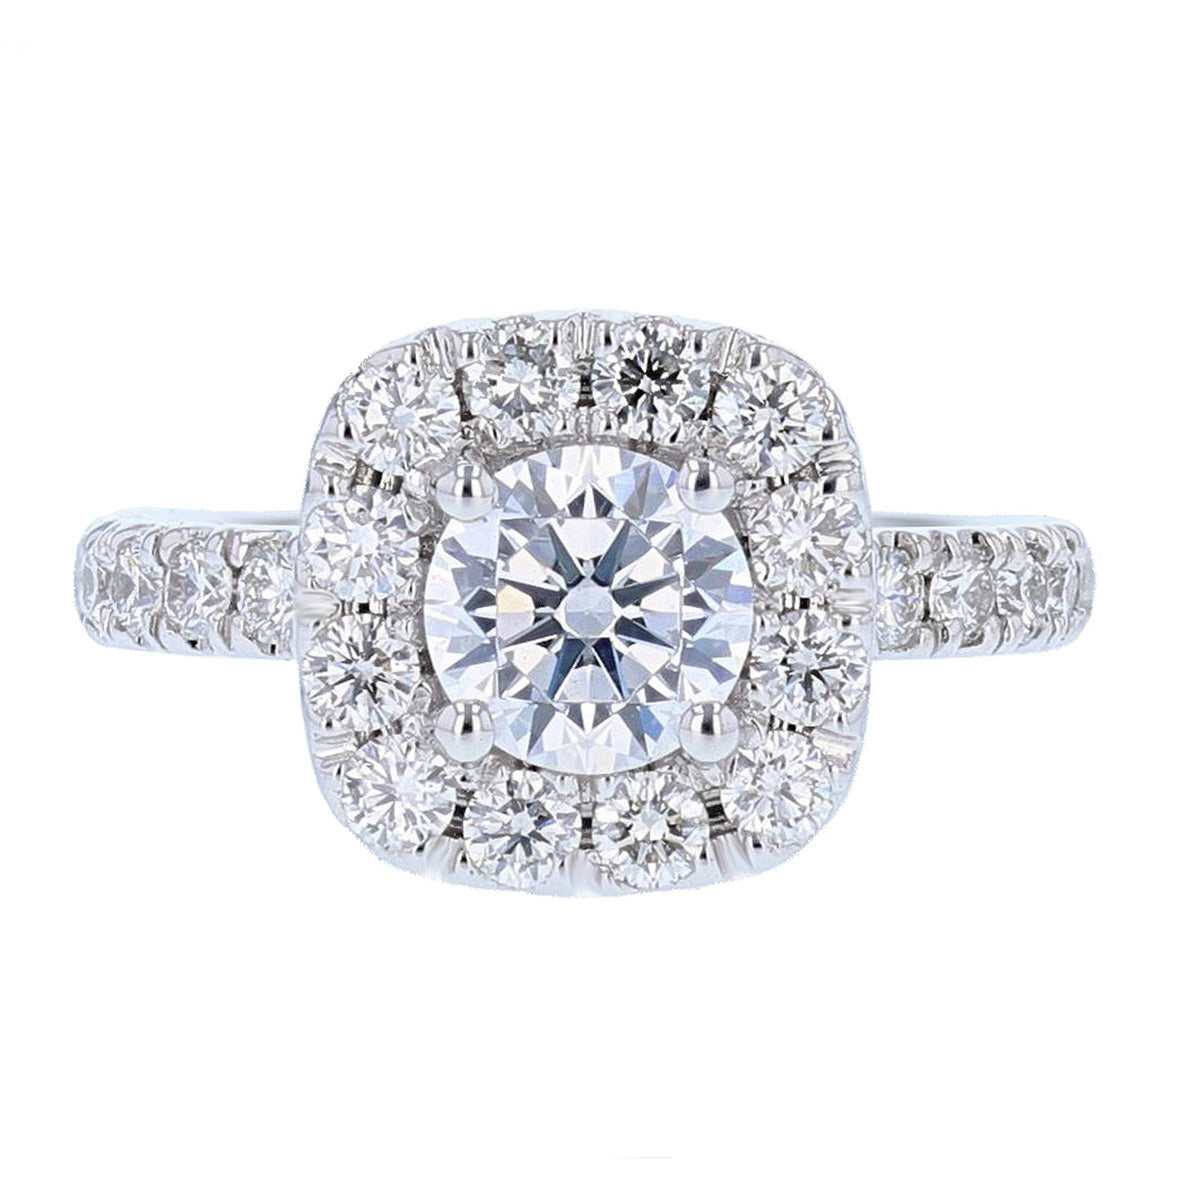 18K White Gold Cushion Halo Round Diamond Engagement Ring - Nazarelle